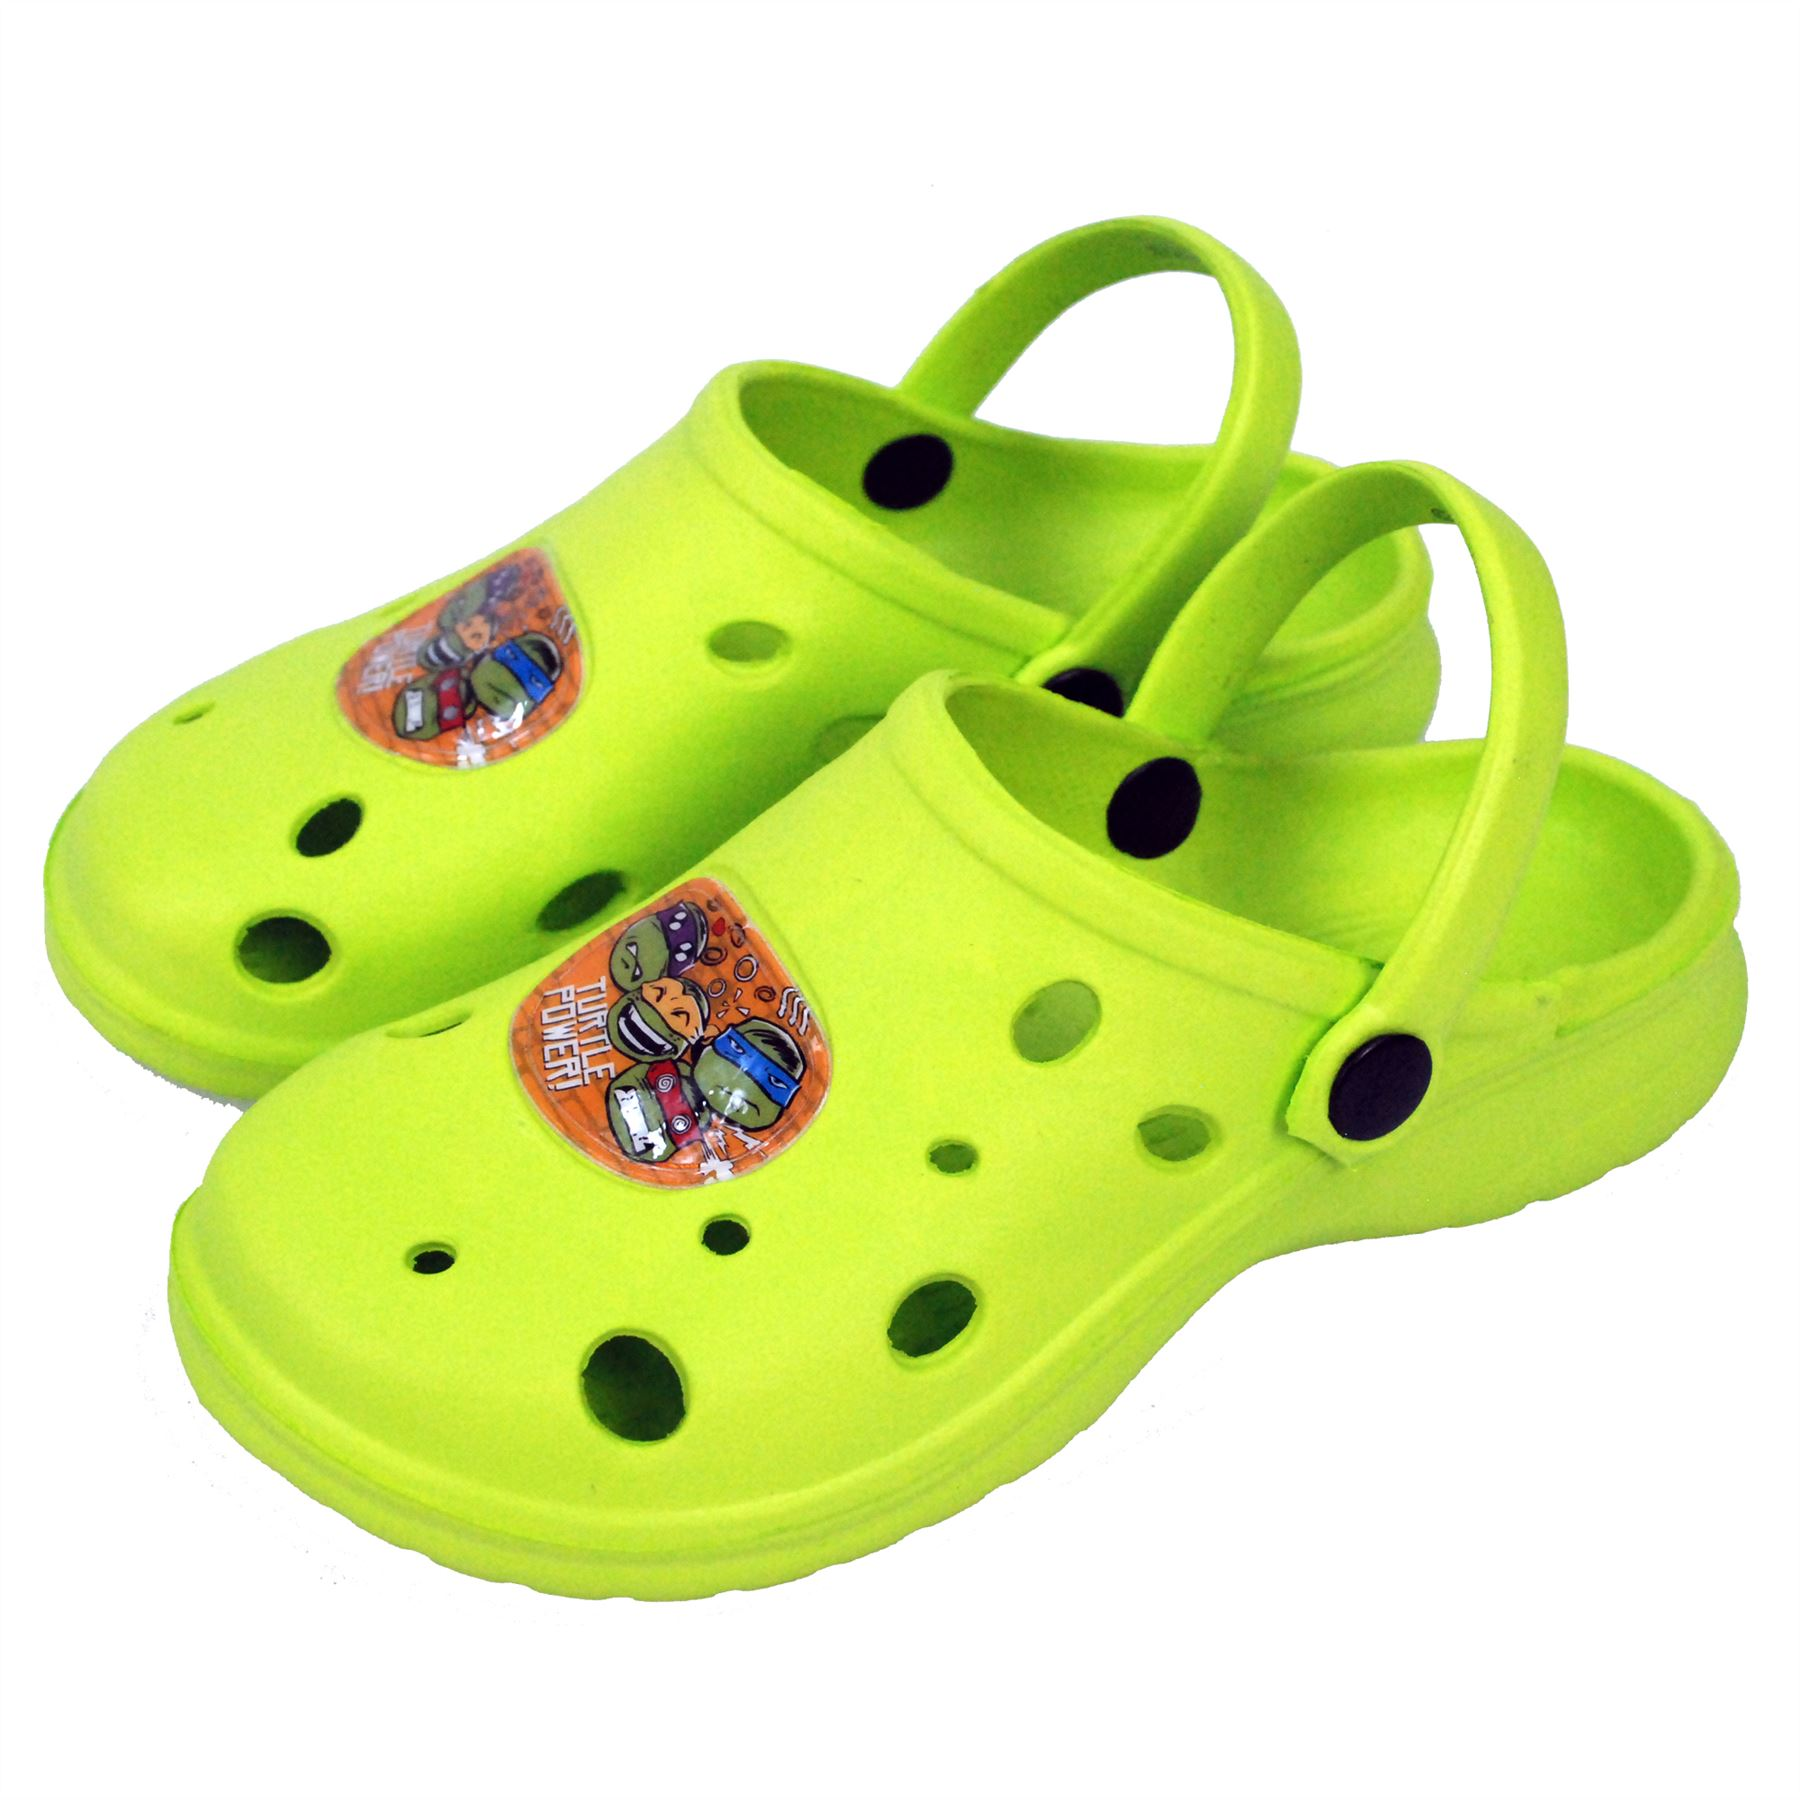 Nickelodeon® Turtles Kids Boys Sandals Beach Slippers Shoes UK Sizes 5 to 1